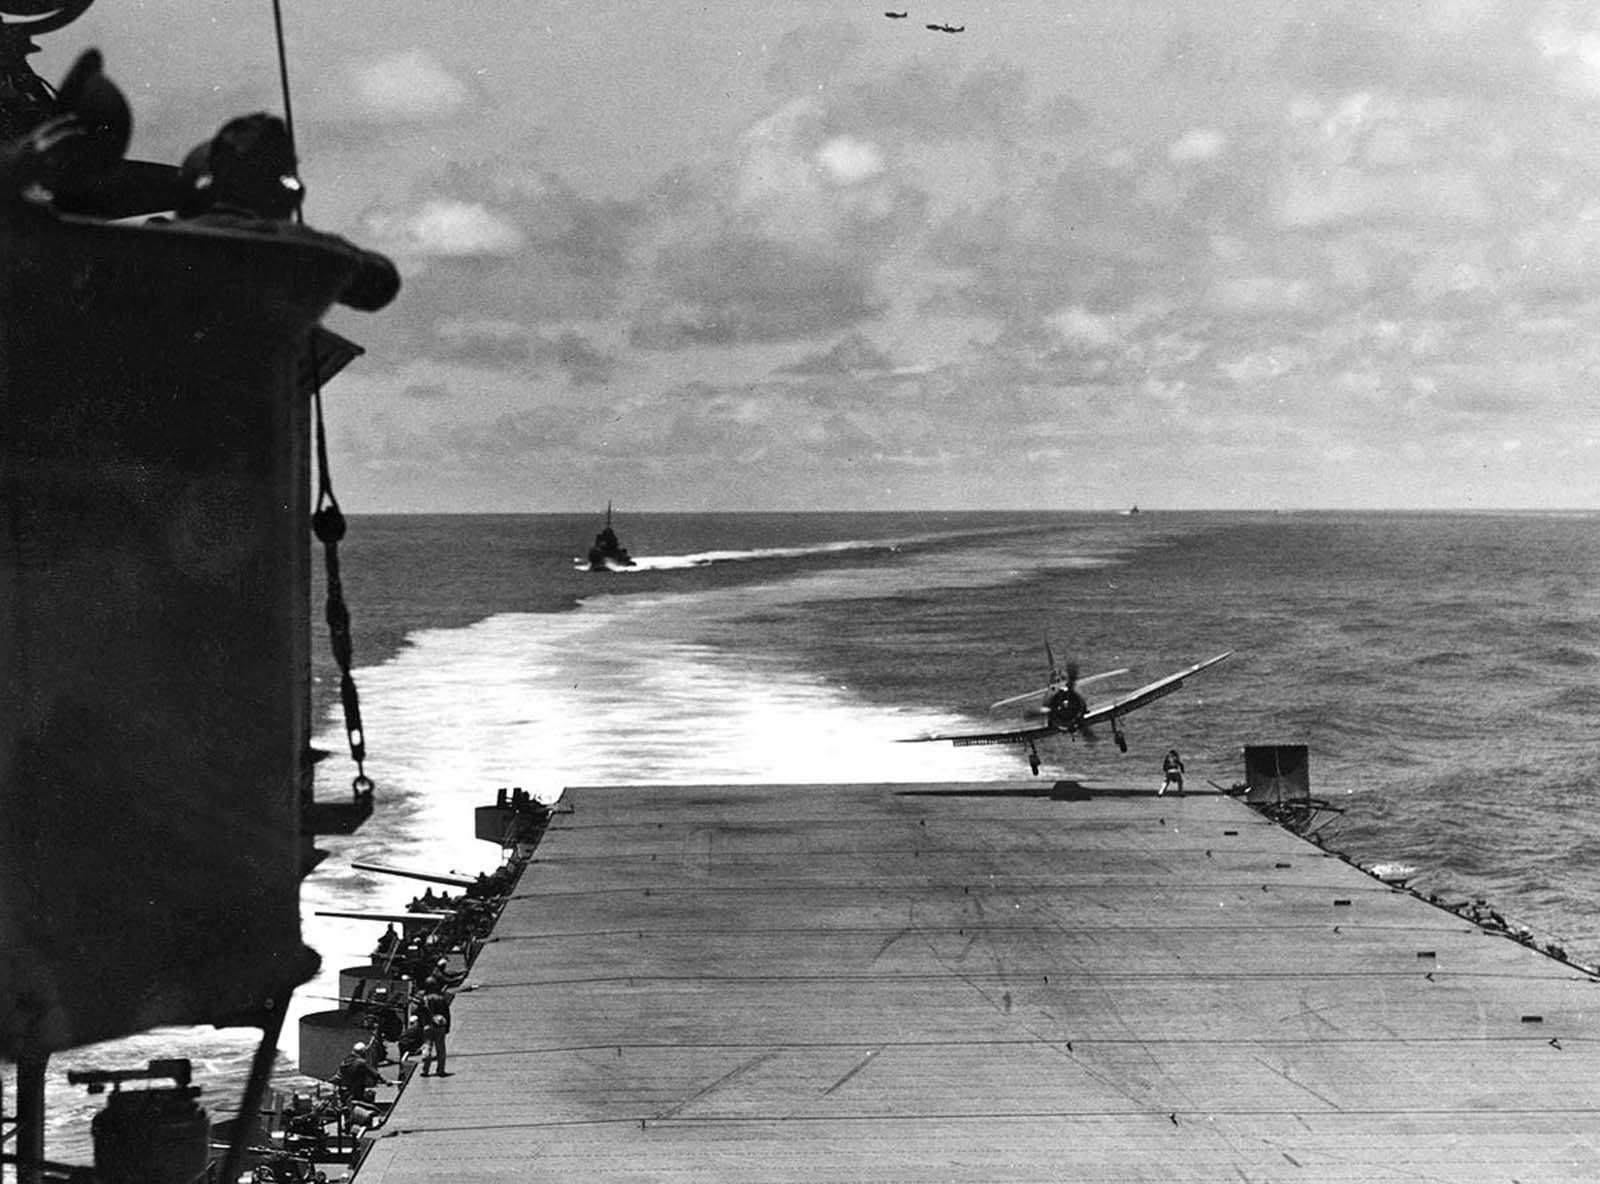 A VB-8 SBD lands far off center, flying right over the head of the Landing Signal Officer aboard USS Hornet during the Battle of Midway, on June 4, 1942.